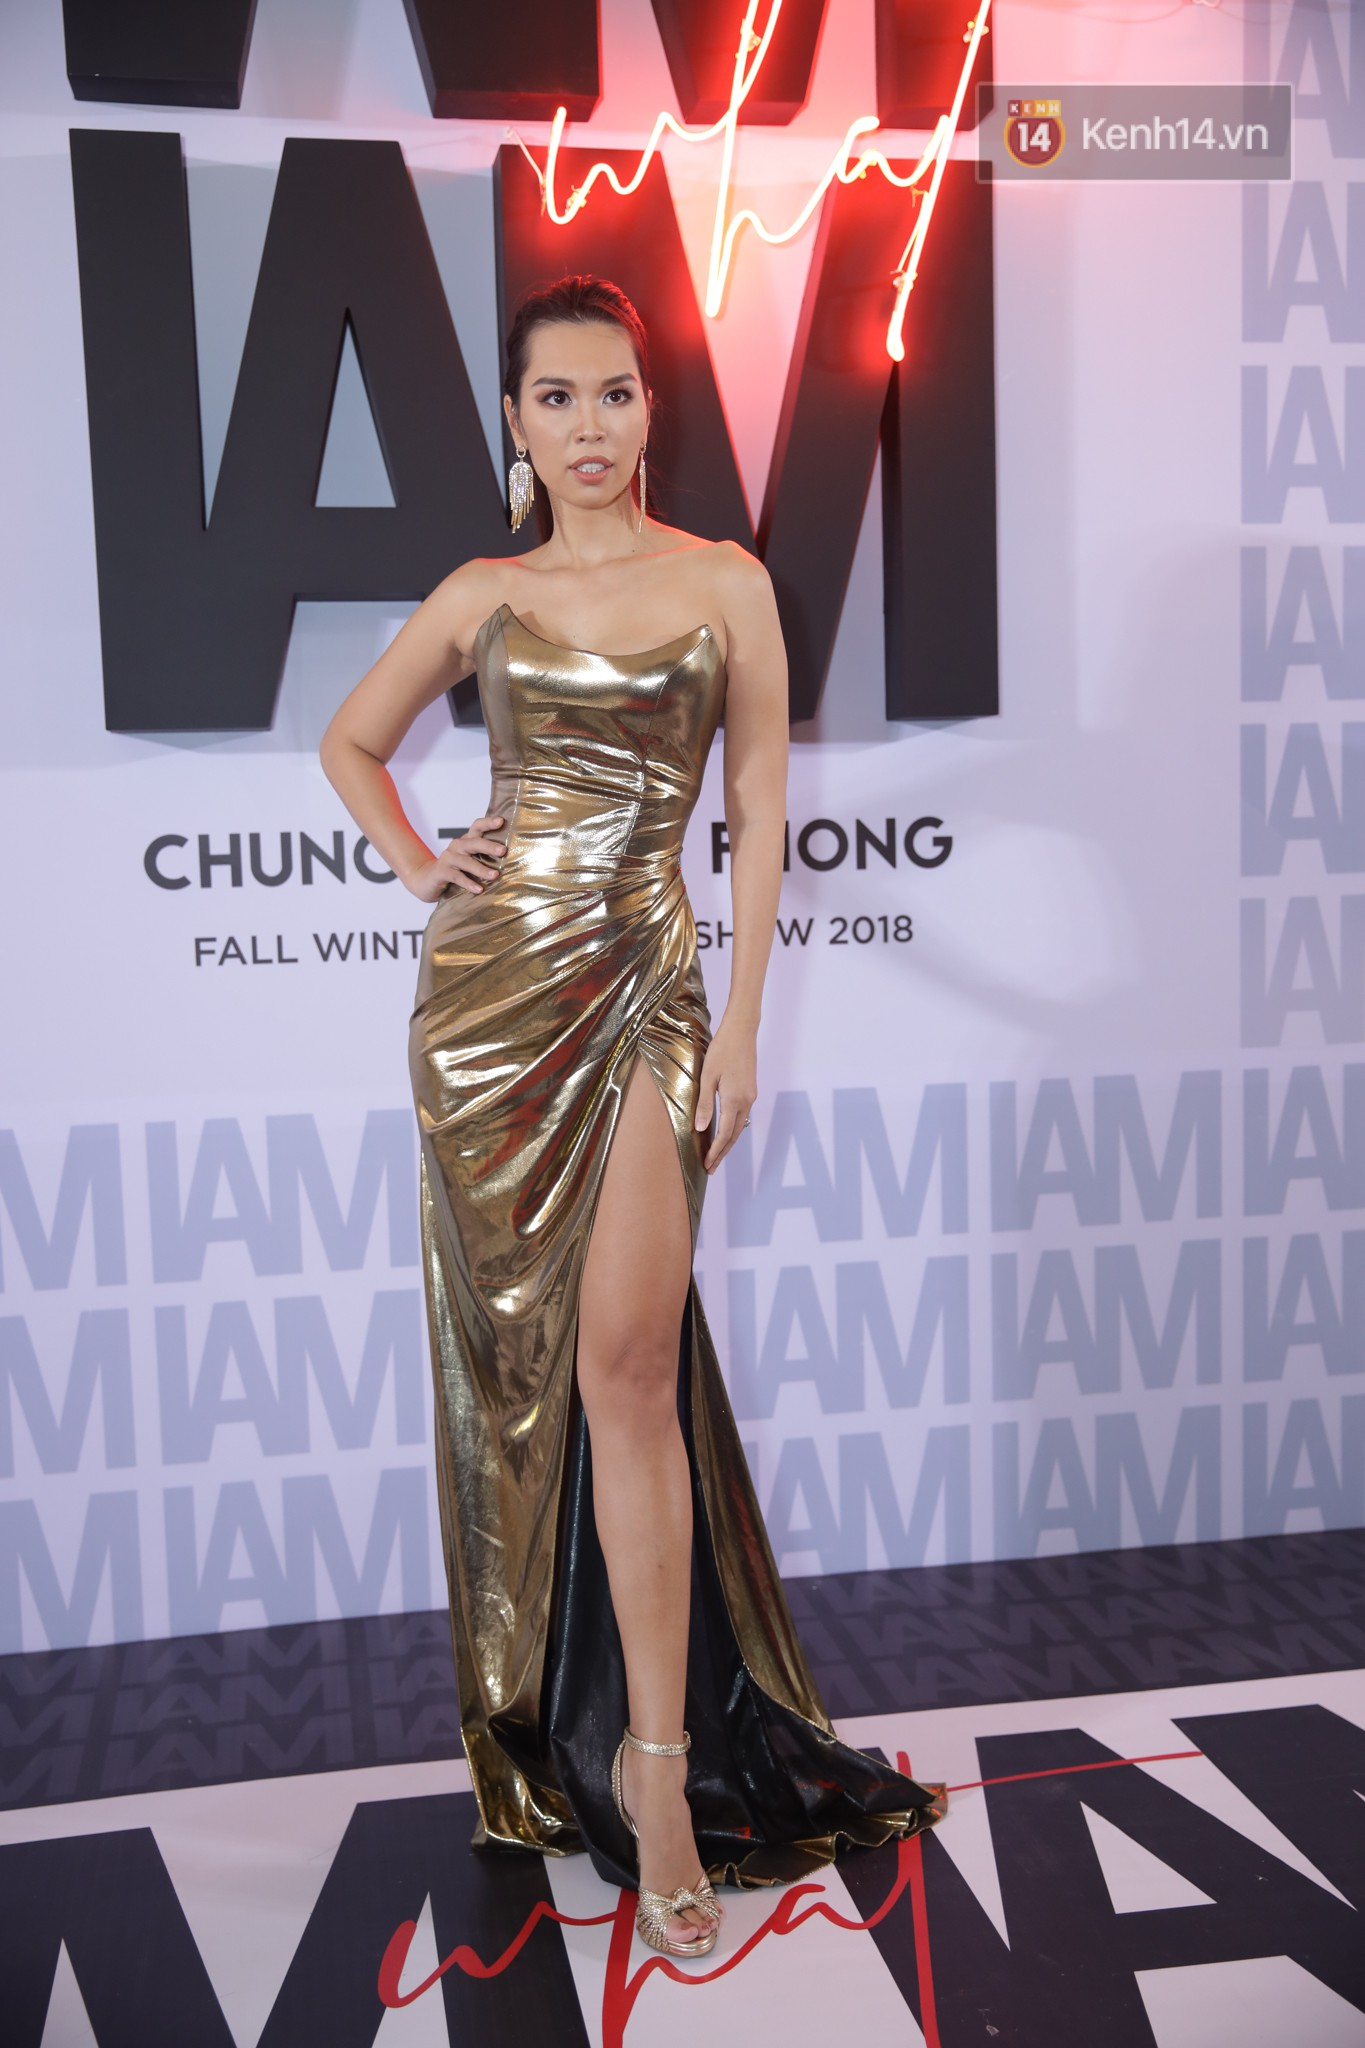 The red carpet Chung Thanh Phong show: it was able to test curiously, as Quỳnh Anh Shyn caught birds with rain - Photo 21.